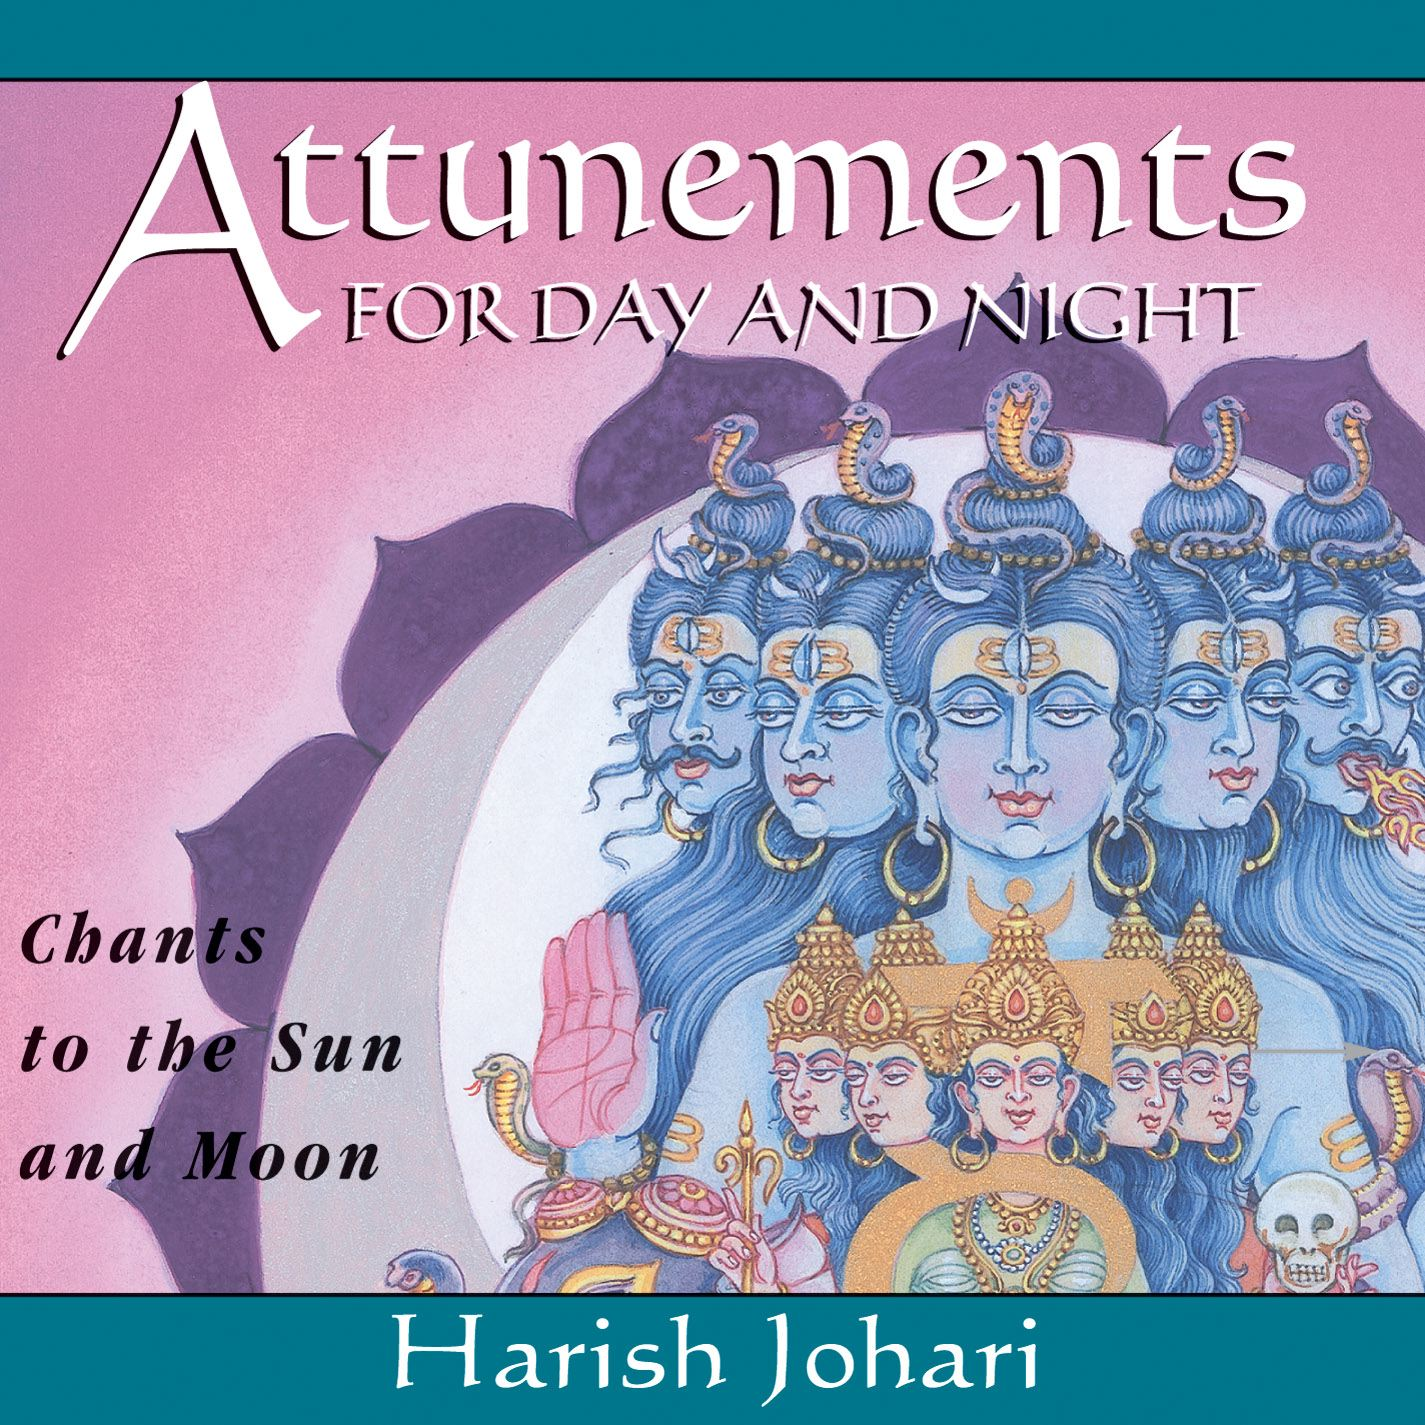 Attunements-for-day-and-night-9781594770739_hr